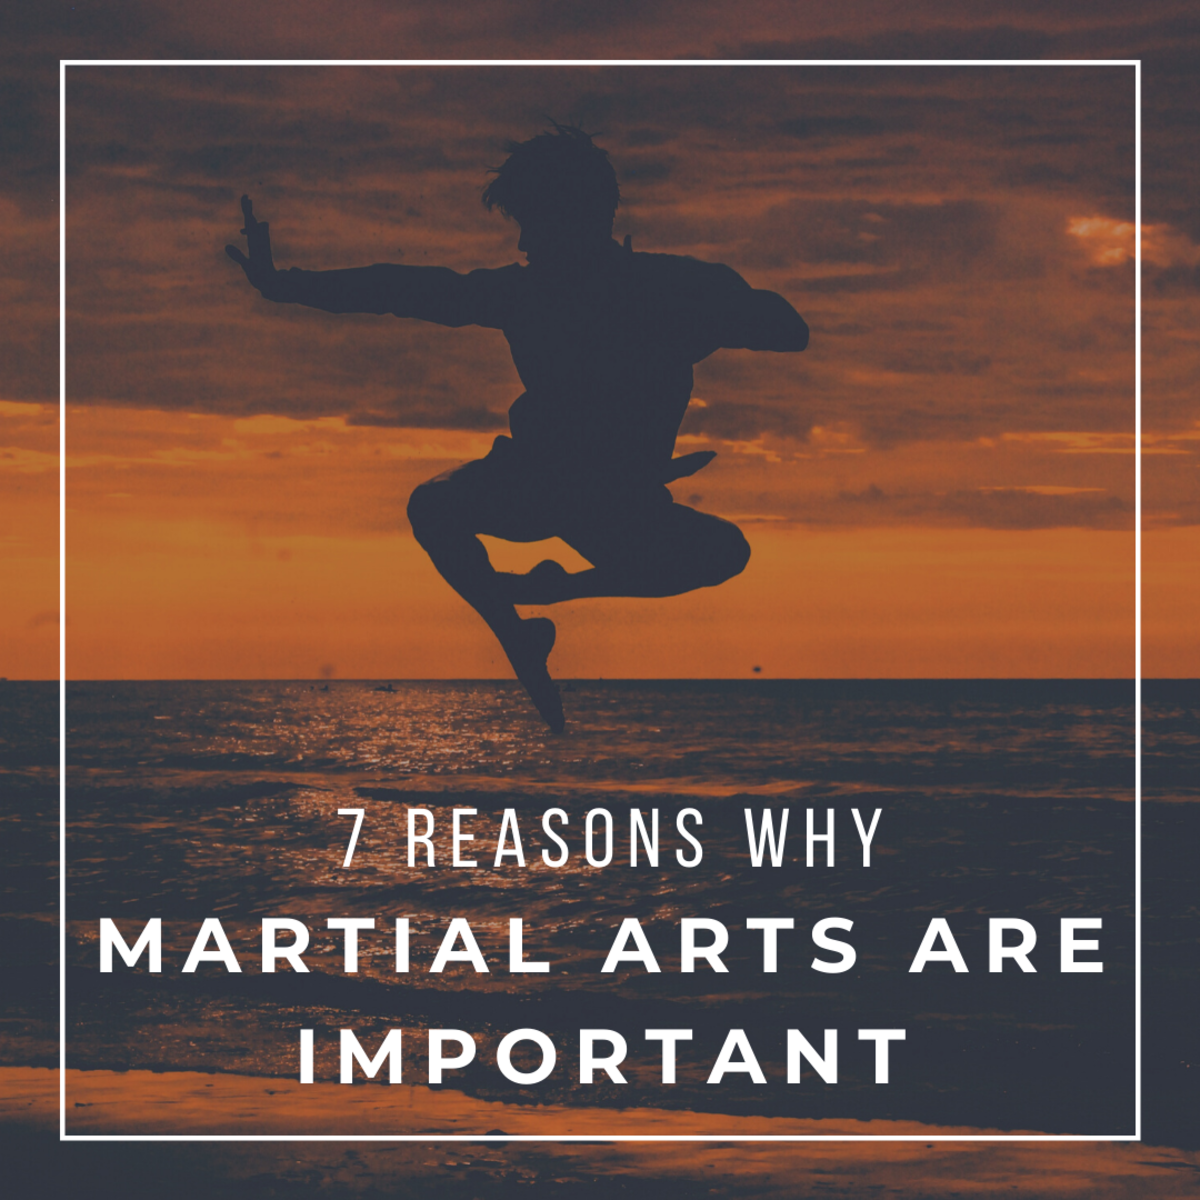 Read on for six reasons why martial arts are important.